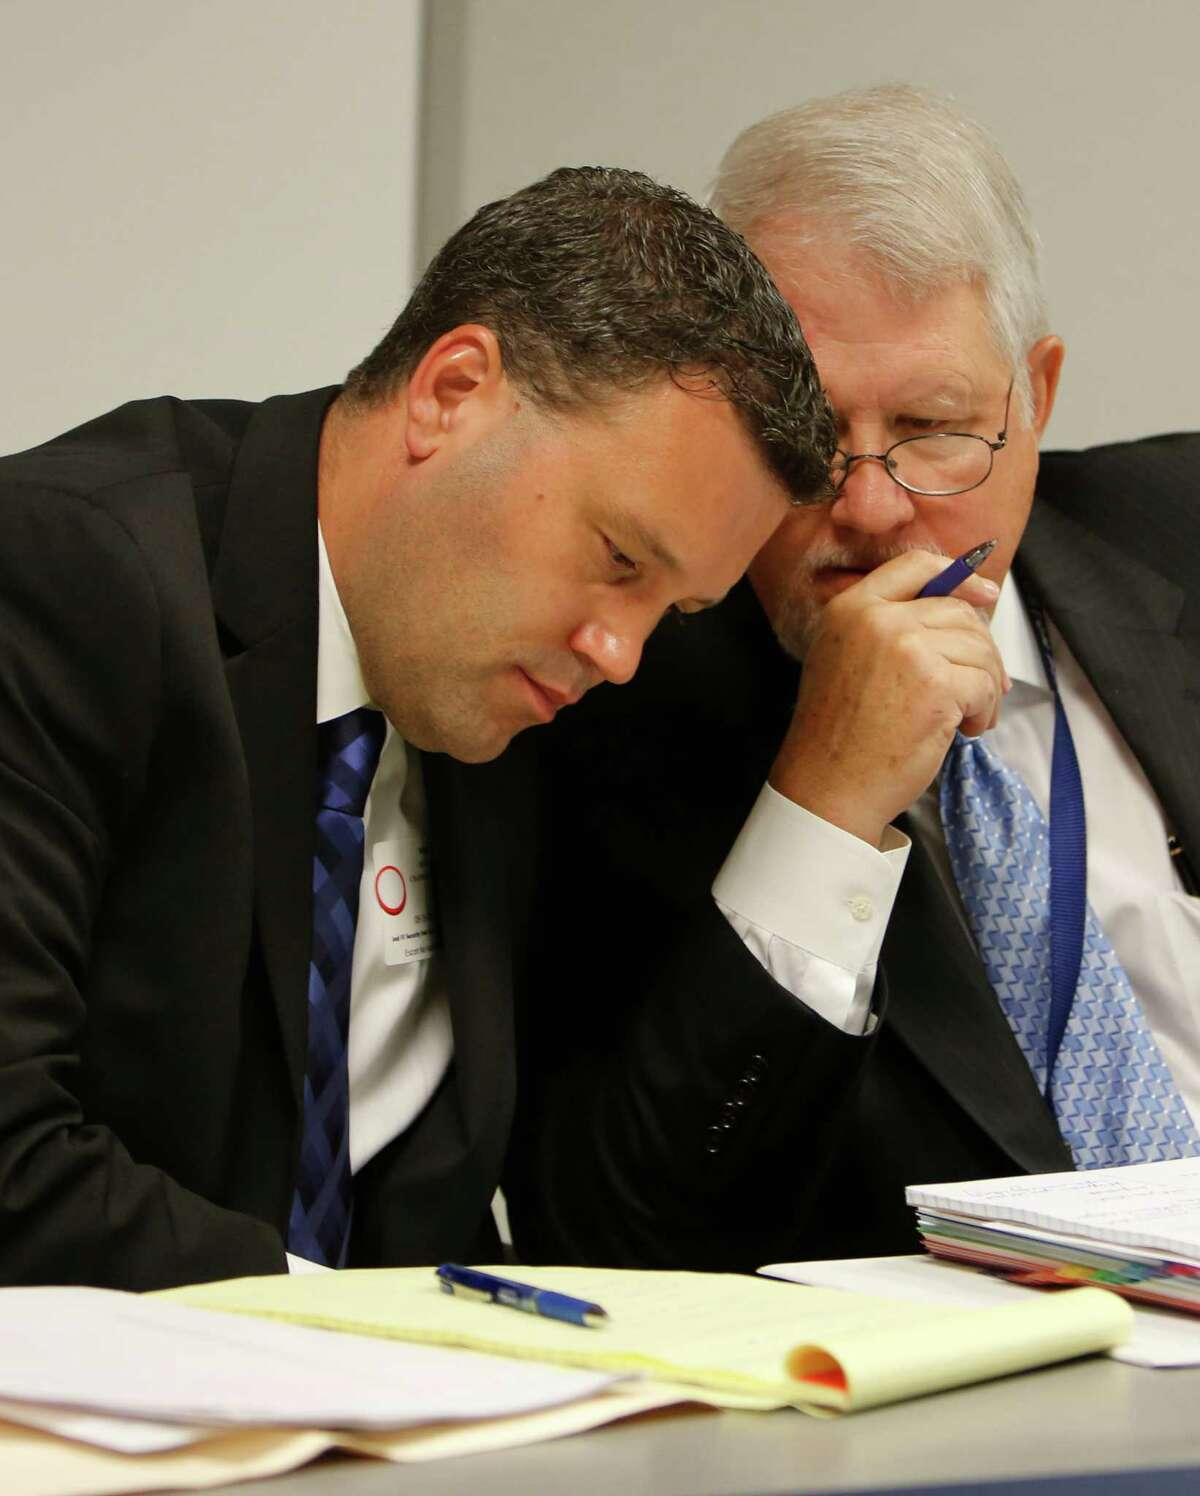 Ryan Chandler, left, confers with Robert Armbruster, staff counsel at the Houston Police Officers' Union.